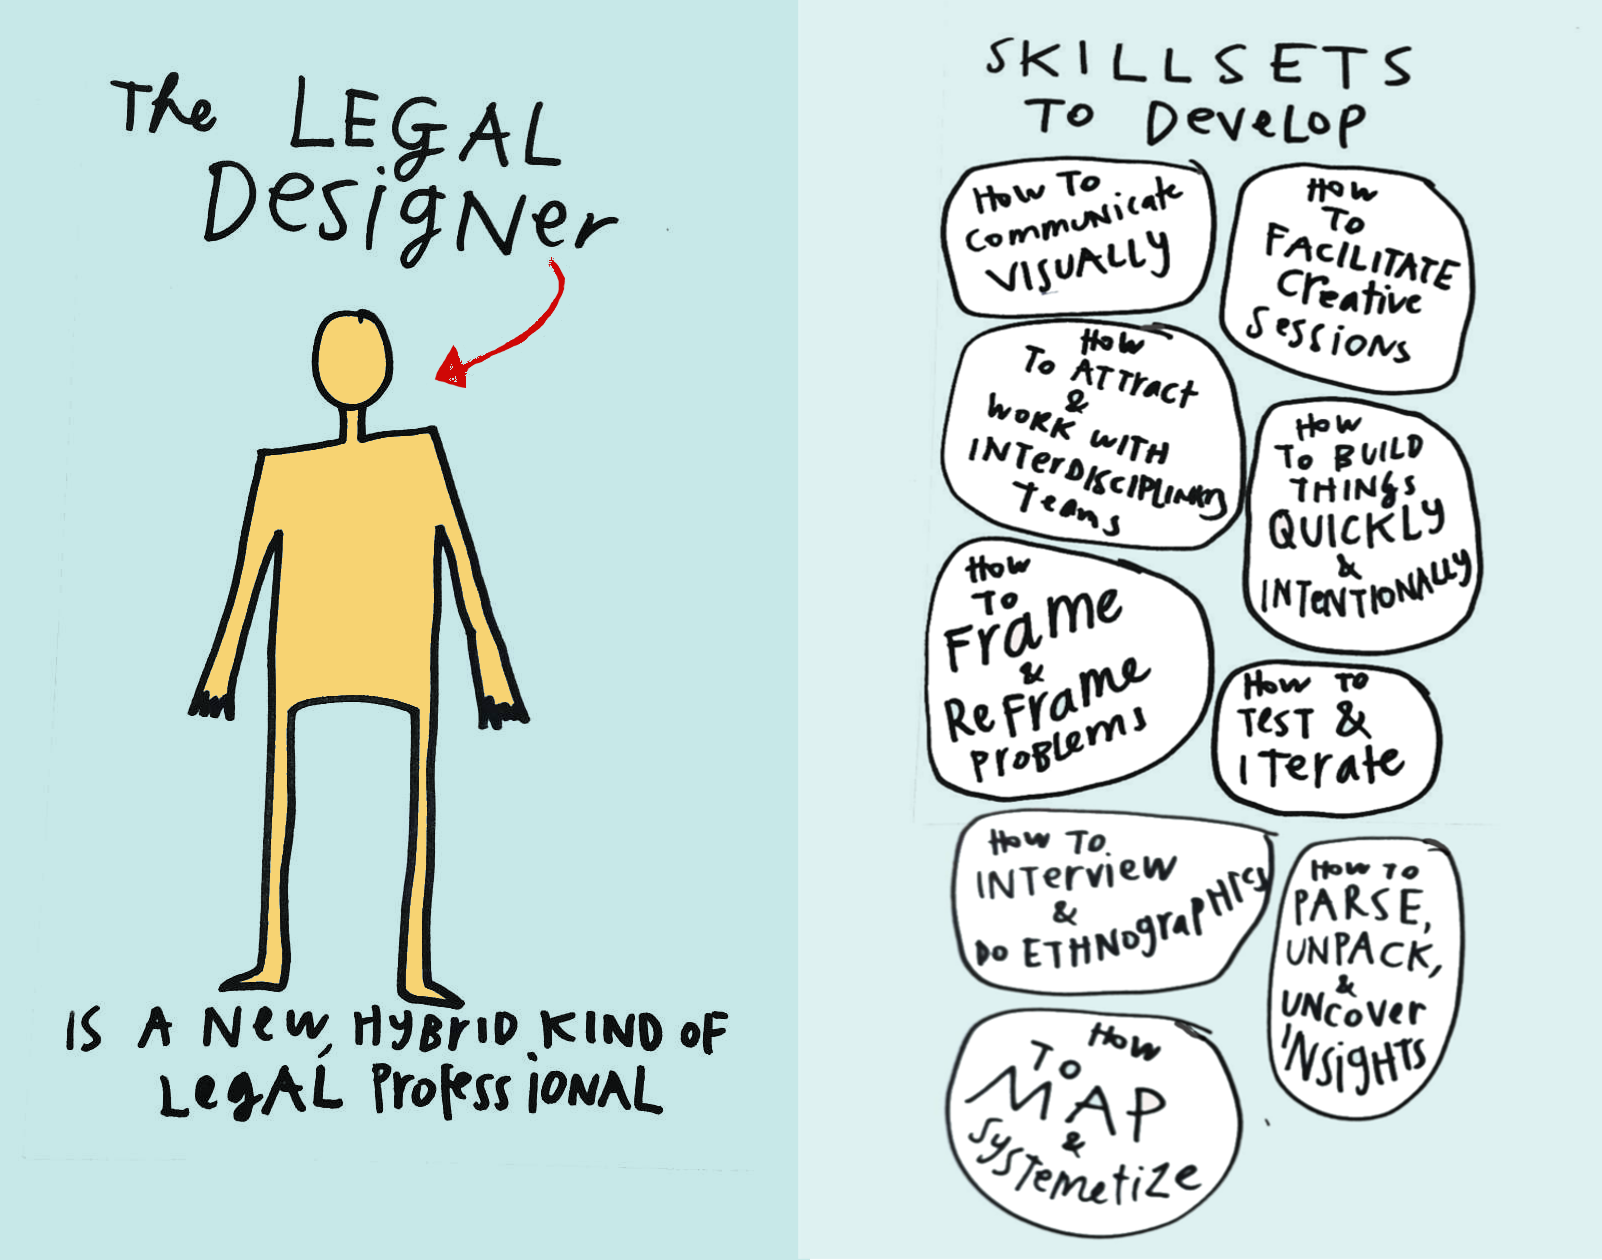 Legal Designers - A New Kind of Legal Professional